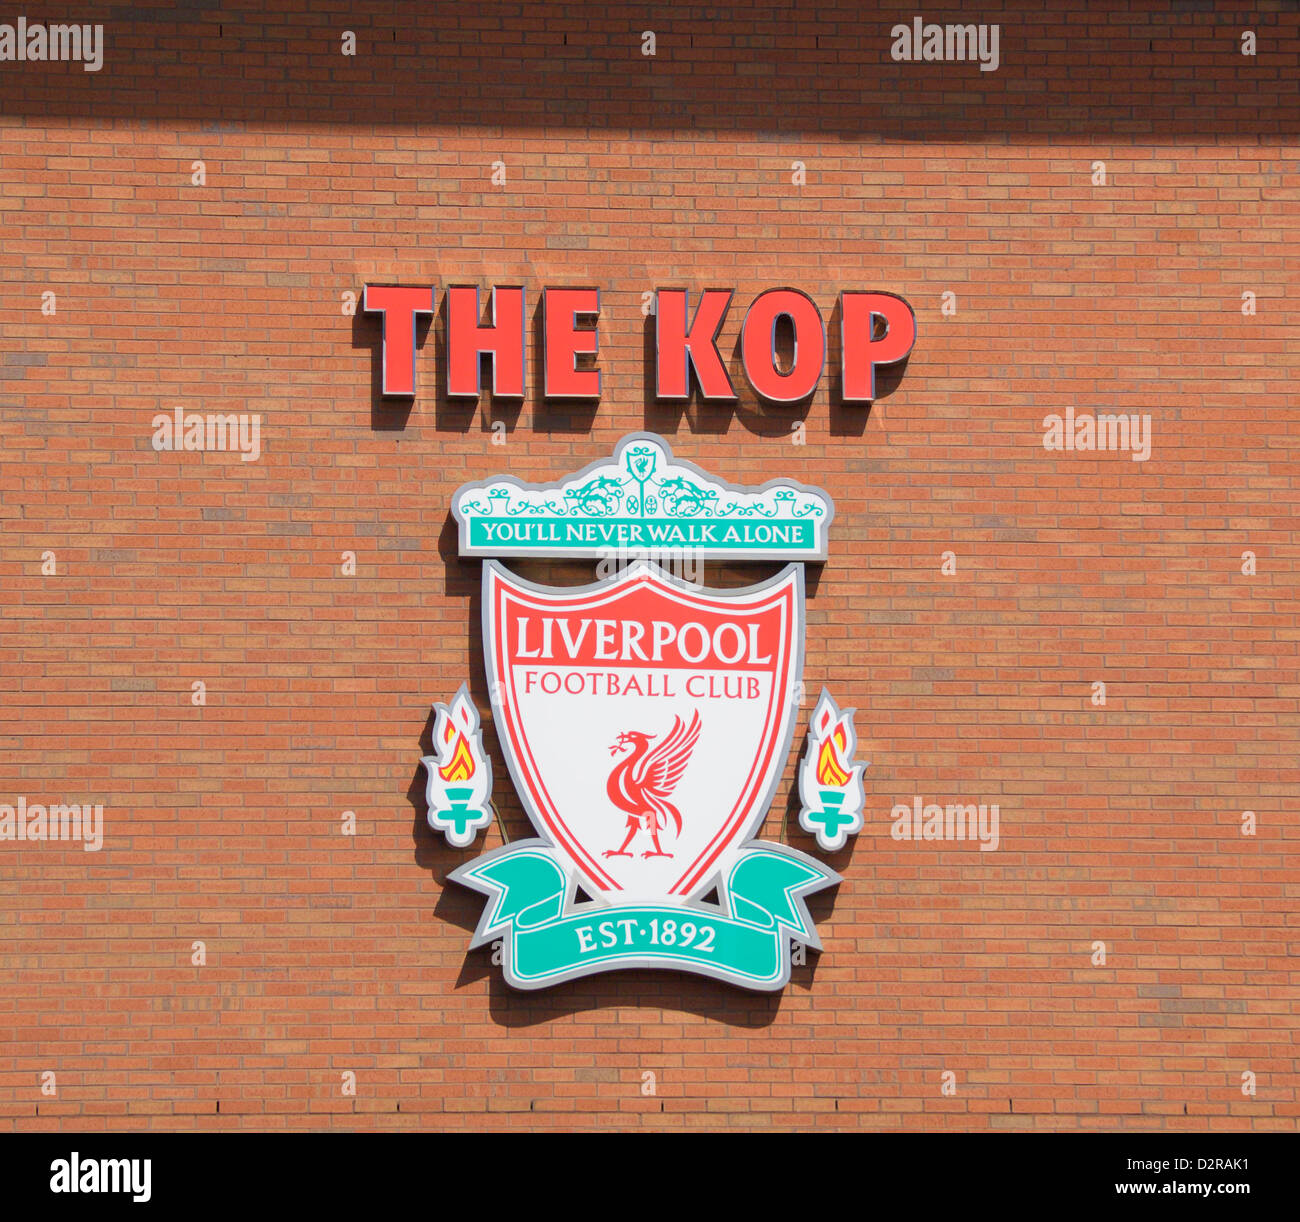 The Kop sign Liverpool Football Club Anfield Liverpool England - Stock Image